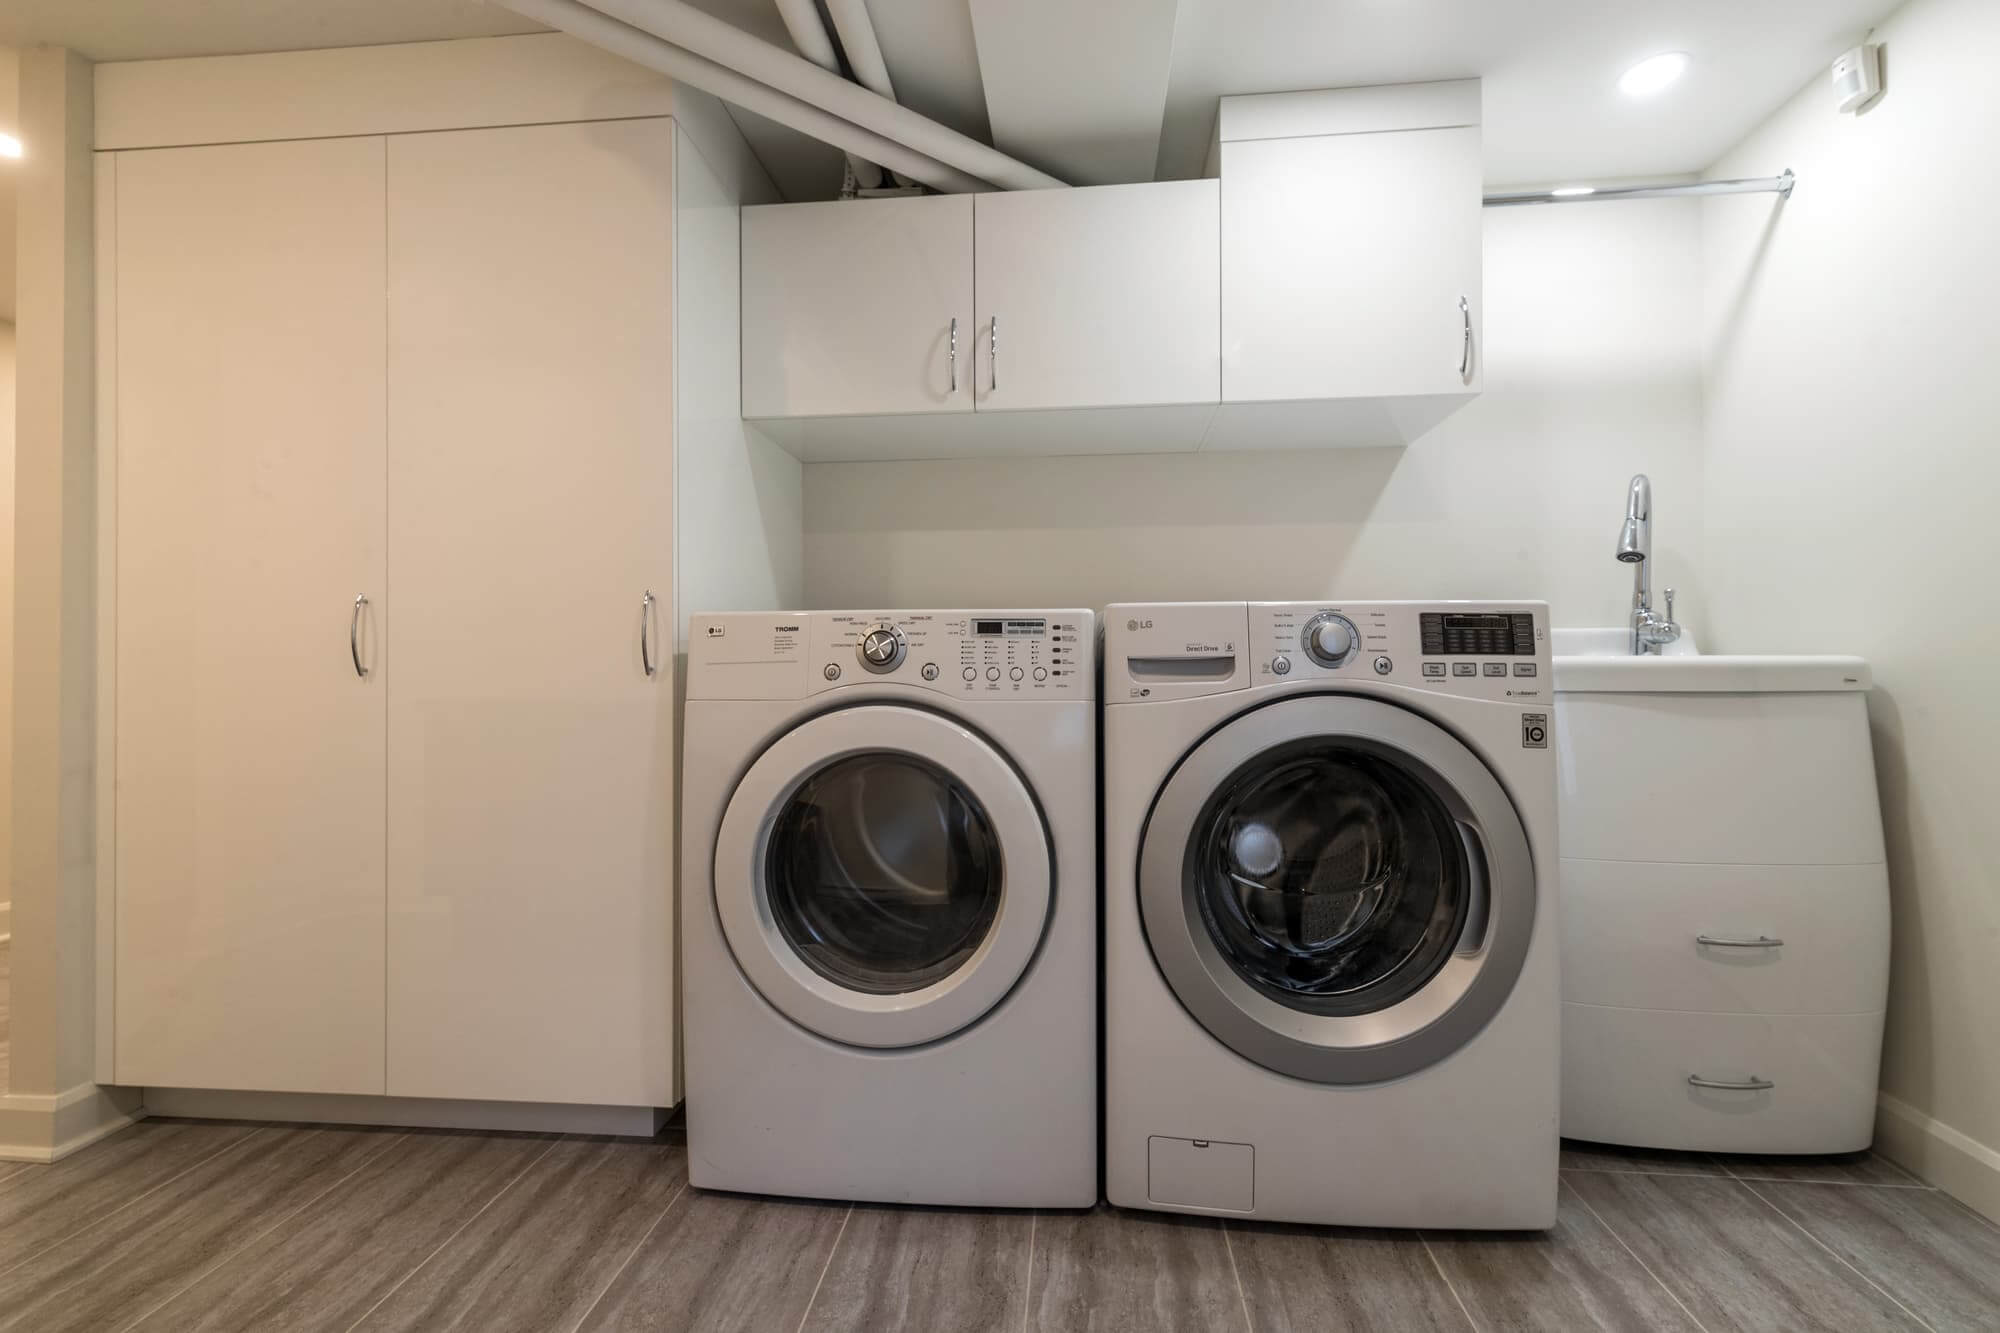 Laundry room in a newly renovated basement with white custom cabinets and washer/dryer